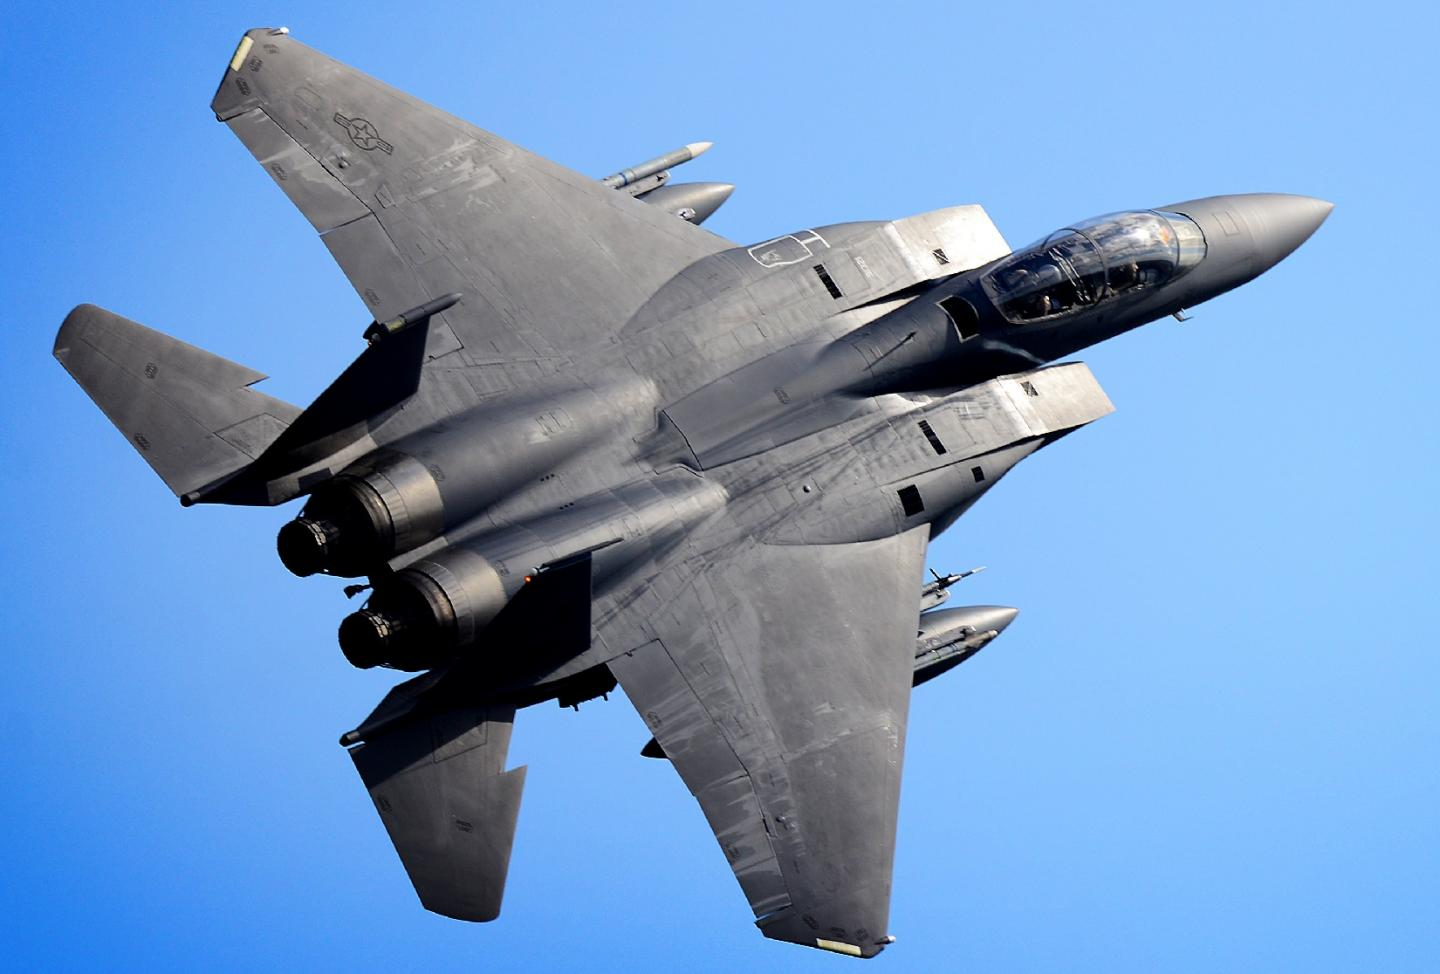 An Air Force Pilot Told Us What It Is Like to Attack with an F-15 Strike Eagle